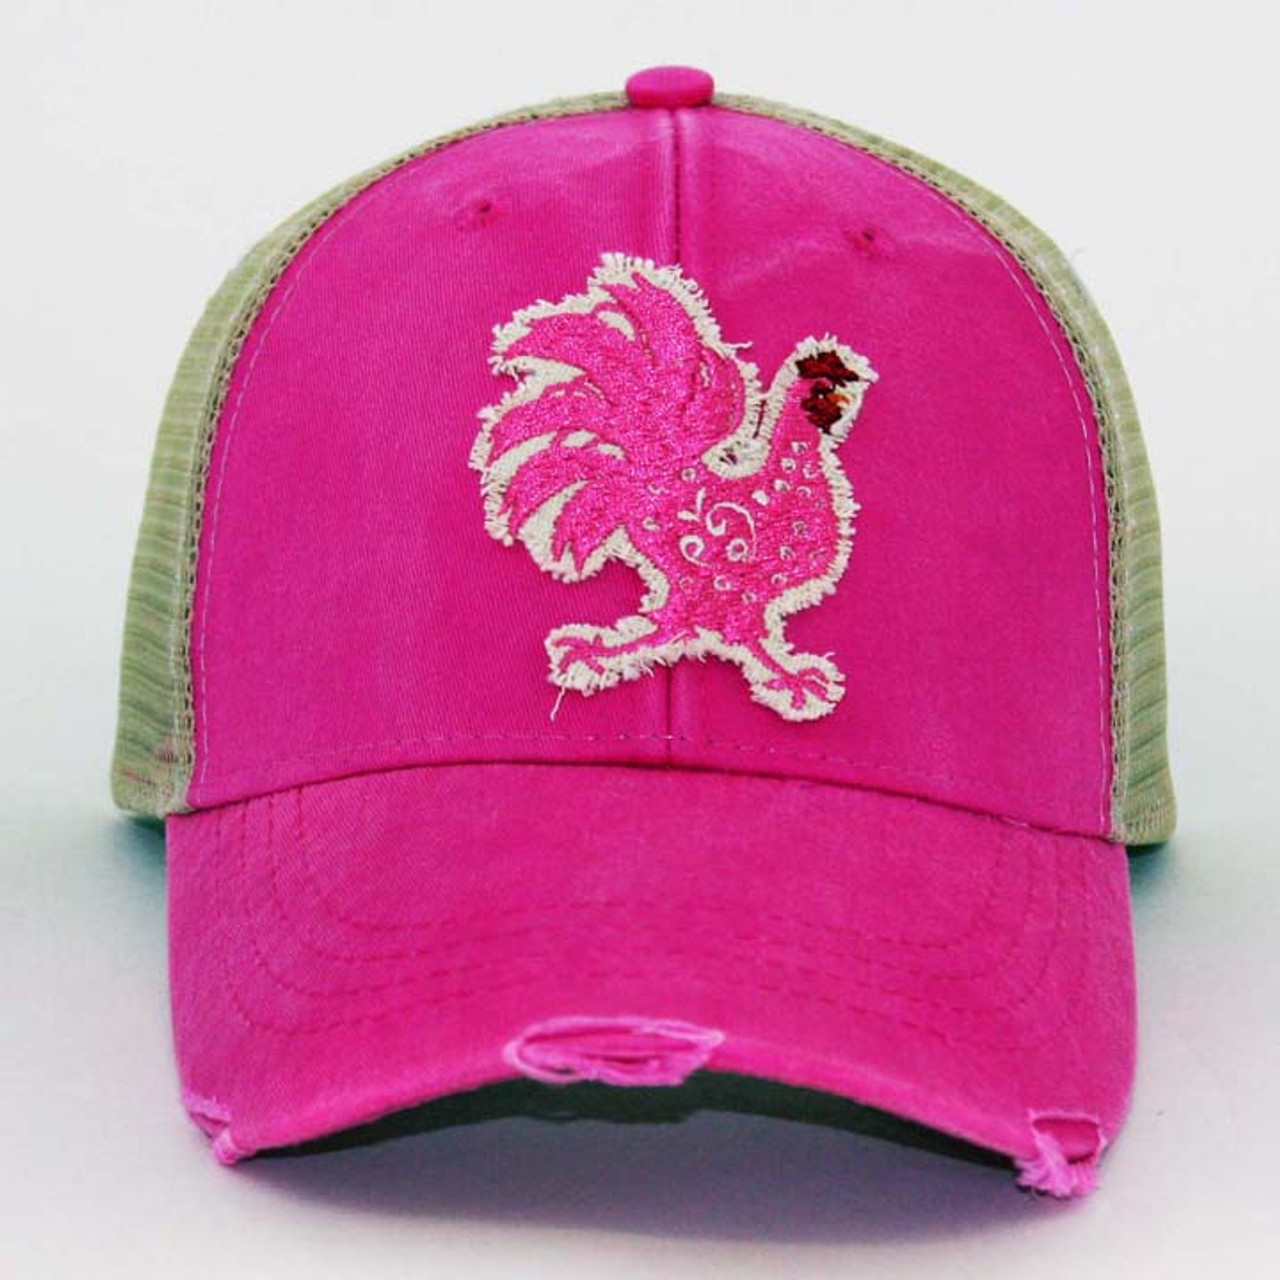 IT Hat-Distressed Trucker Neon Pink - Funky Chicken Store 8a7e7504692